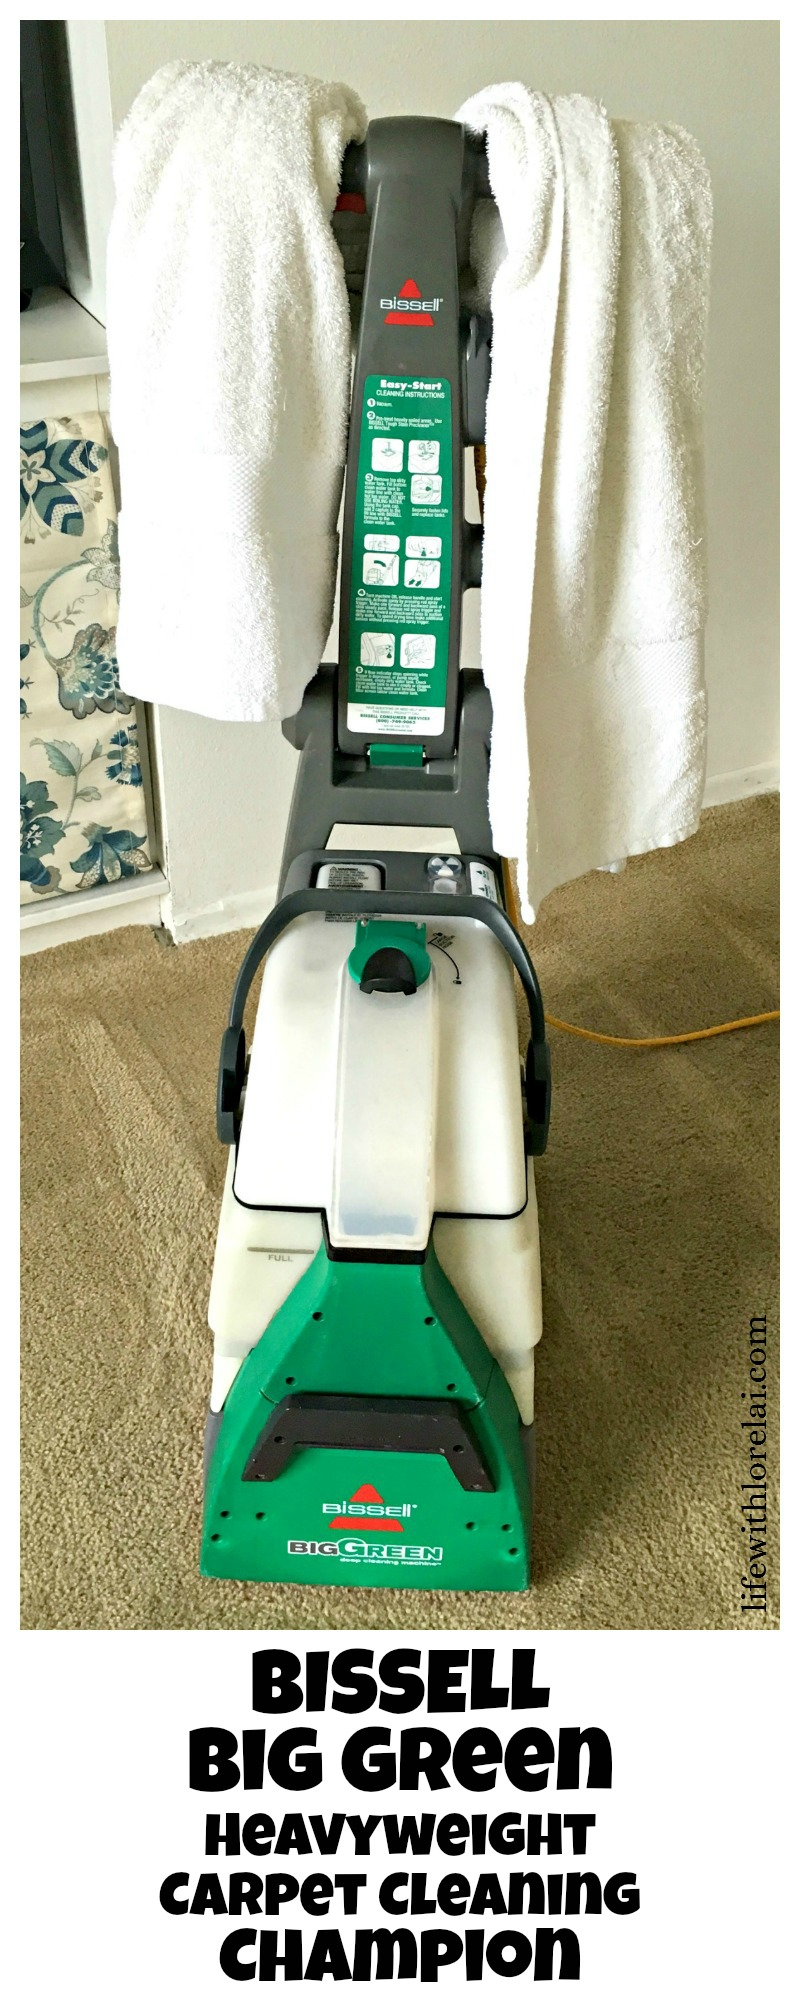 BISSELL-Big-Green-Heavyweight-Carpet-Cleaning-Champion